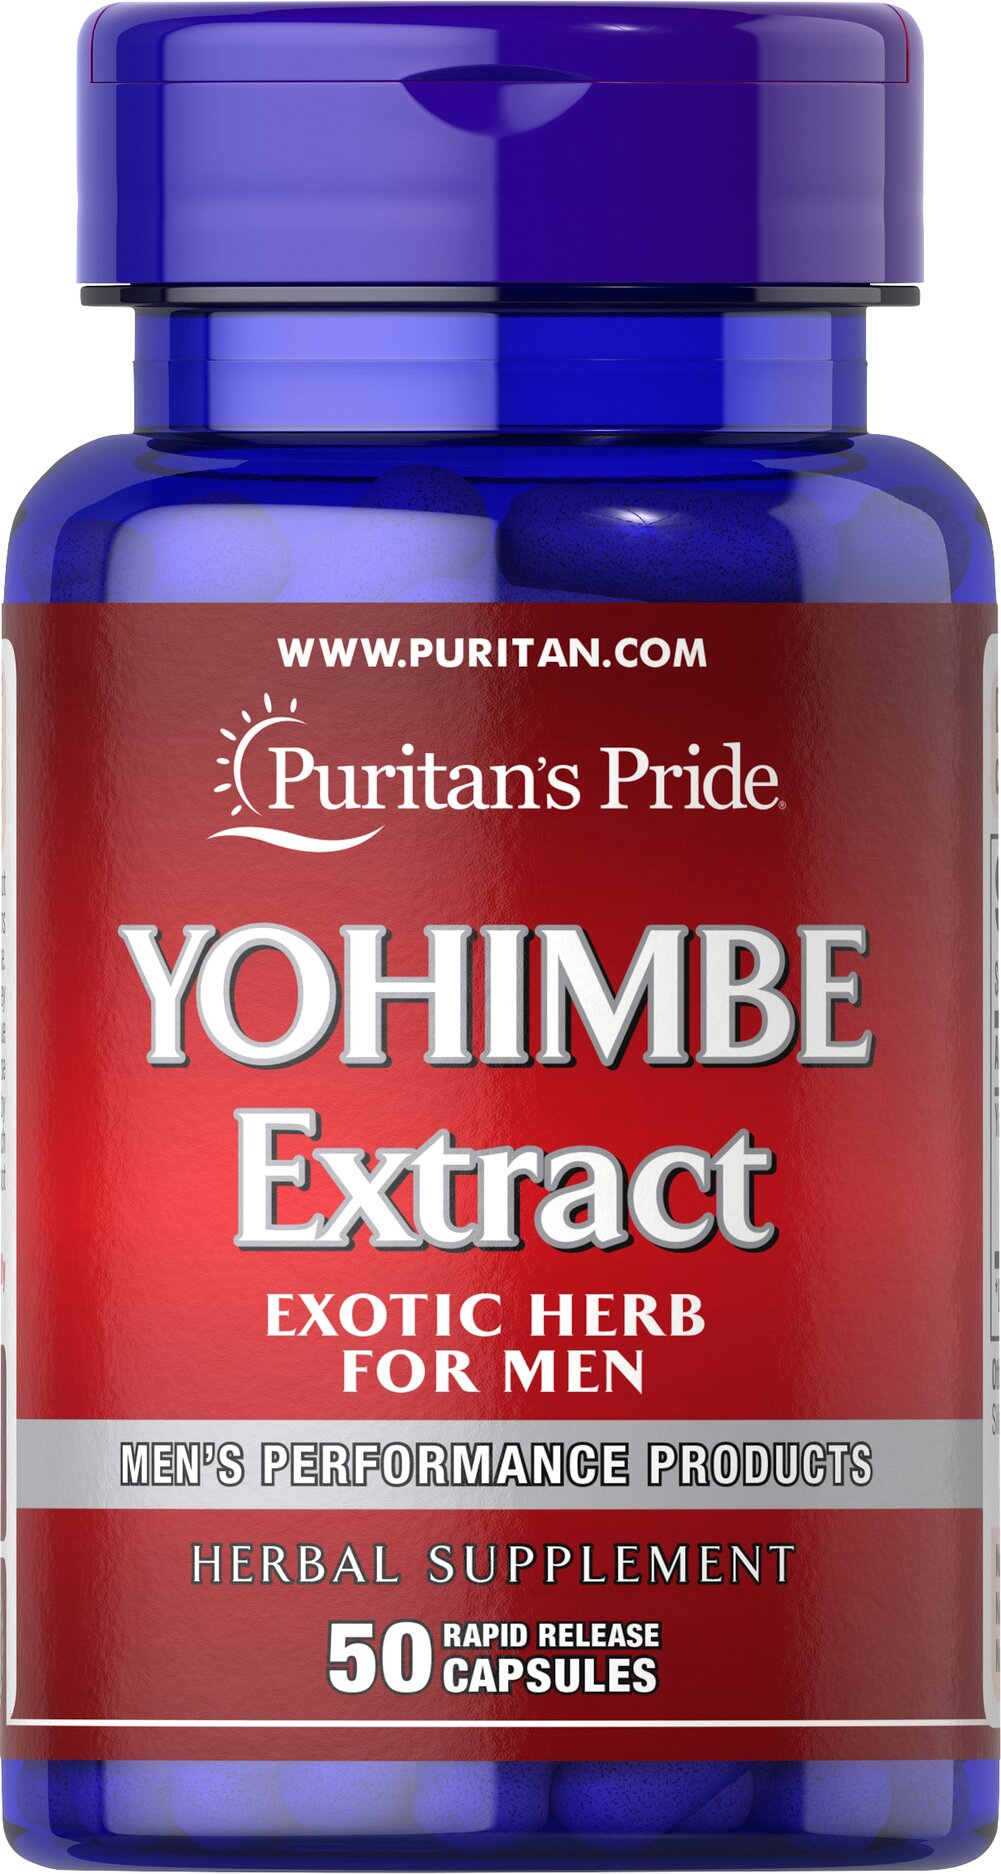 Yohimbe 2000 mg <p>2000 mg 4:1 Extract</p><p>We are proud to bring you Yohimbe 2,000 mg. Look to Puritan's Pride for high quality products and great nutrition at the best possible prices.</p> 50 Capsules 2000 mg $13.39